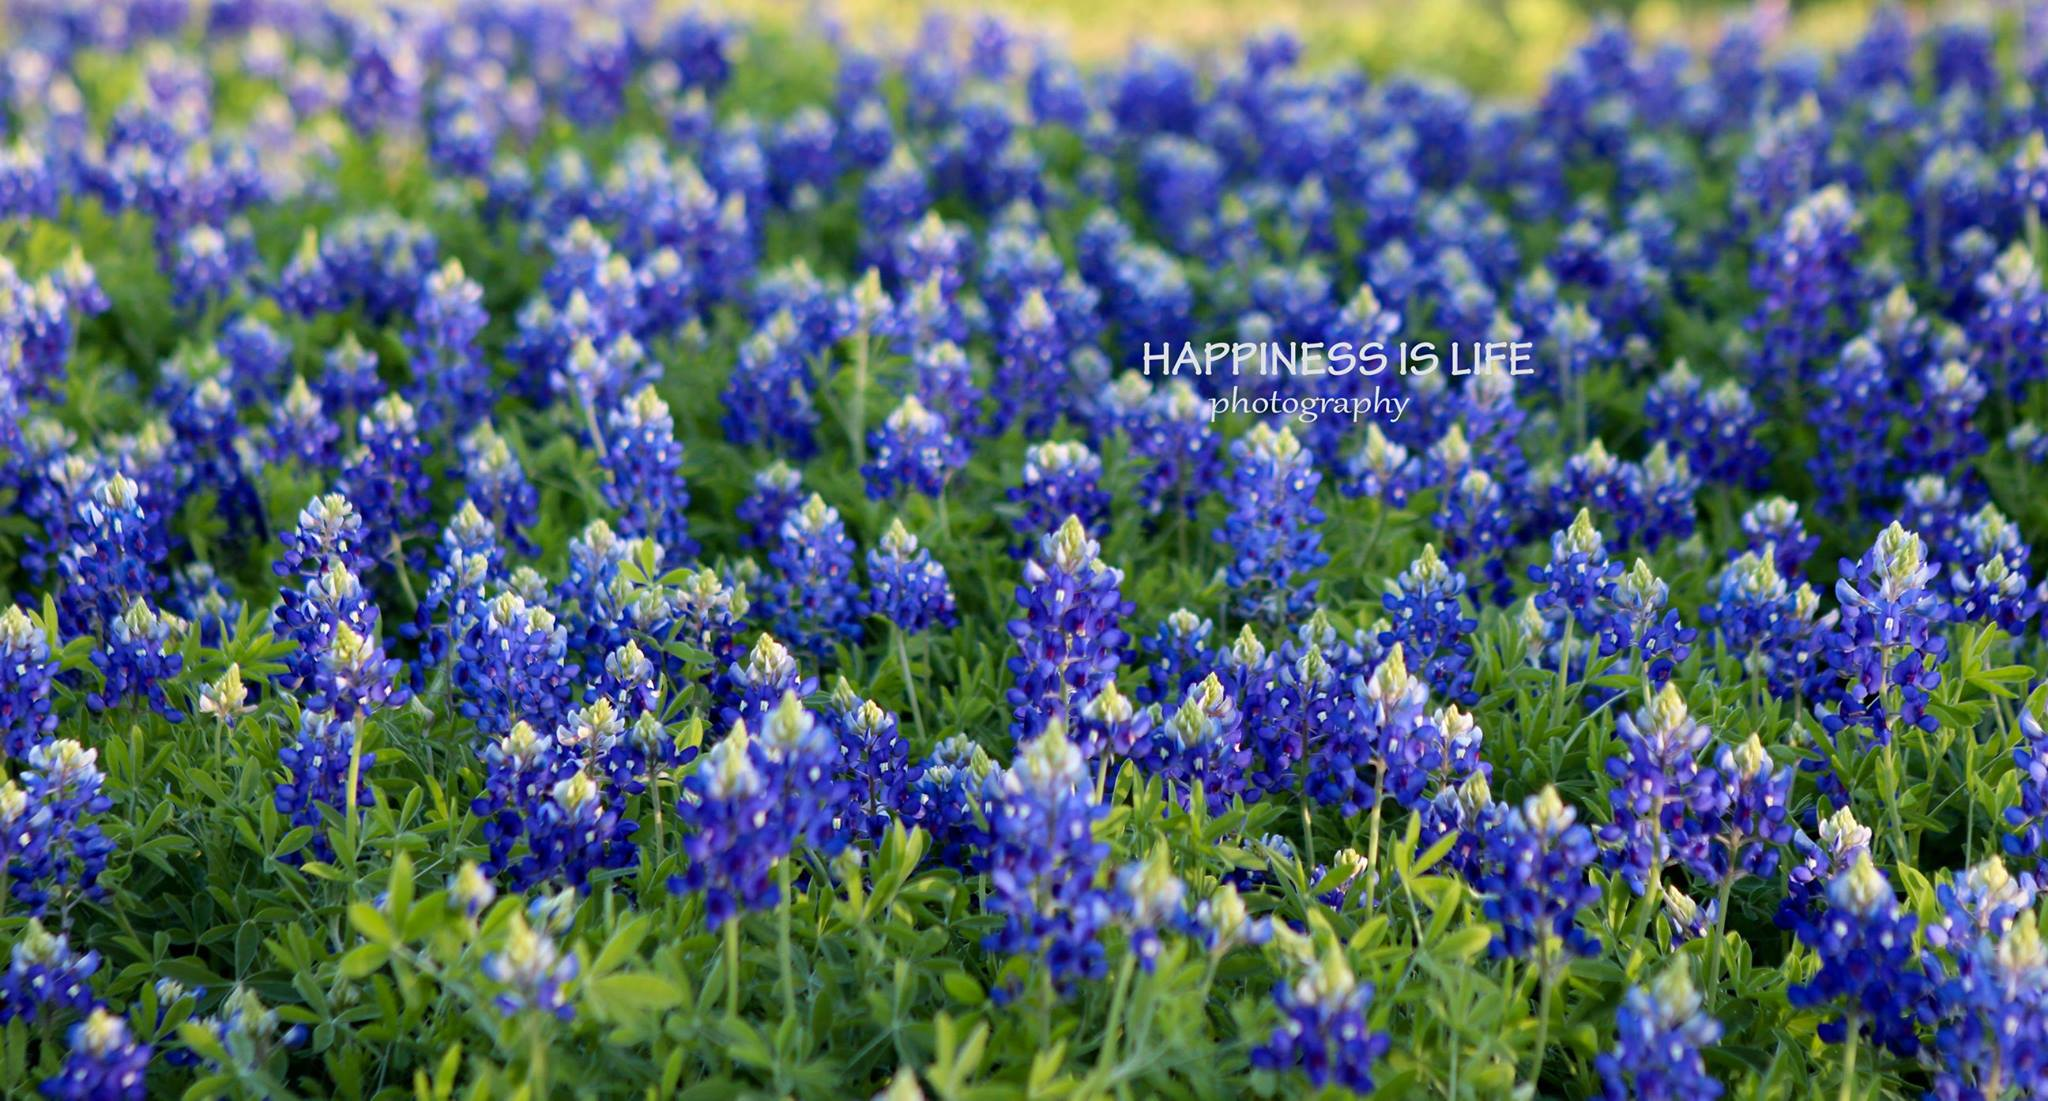 Copyright Happiness is Life Photo